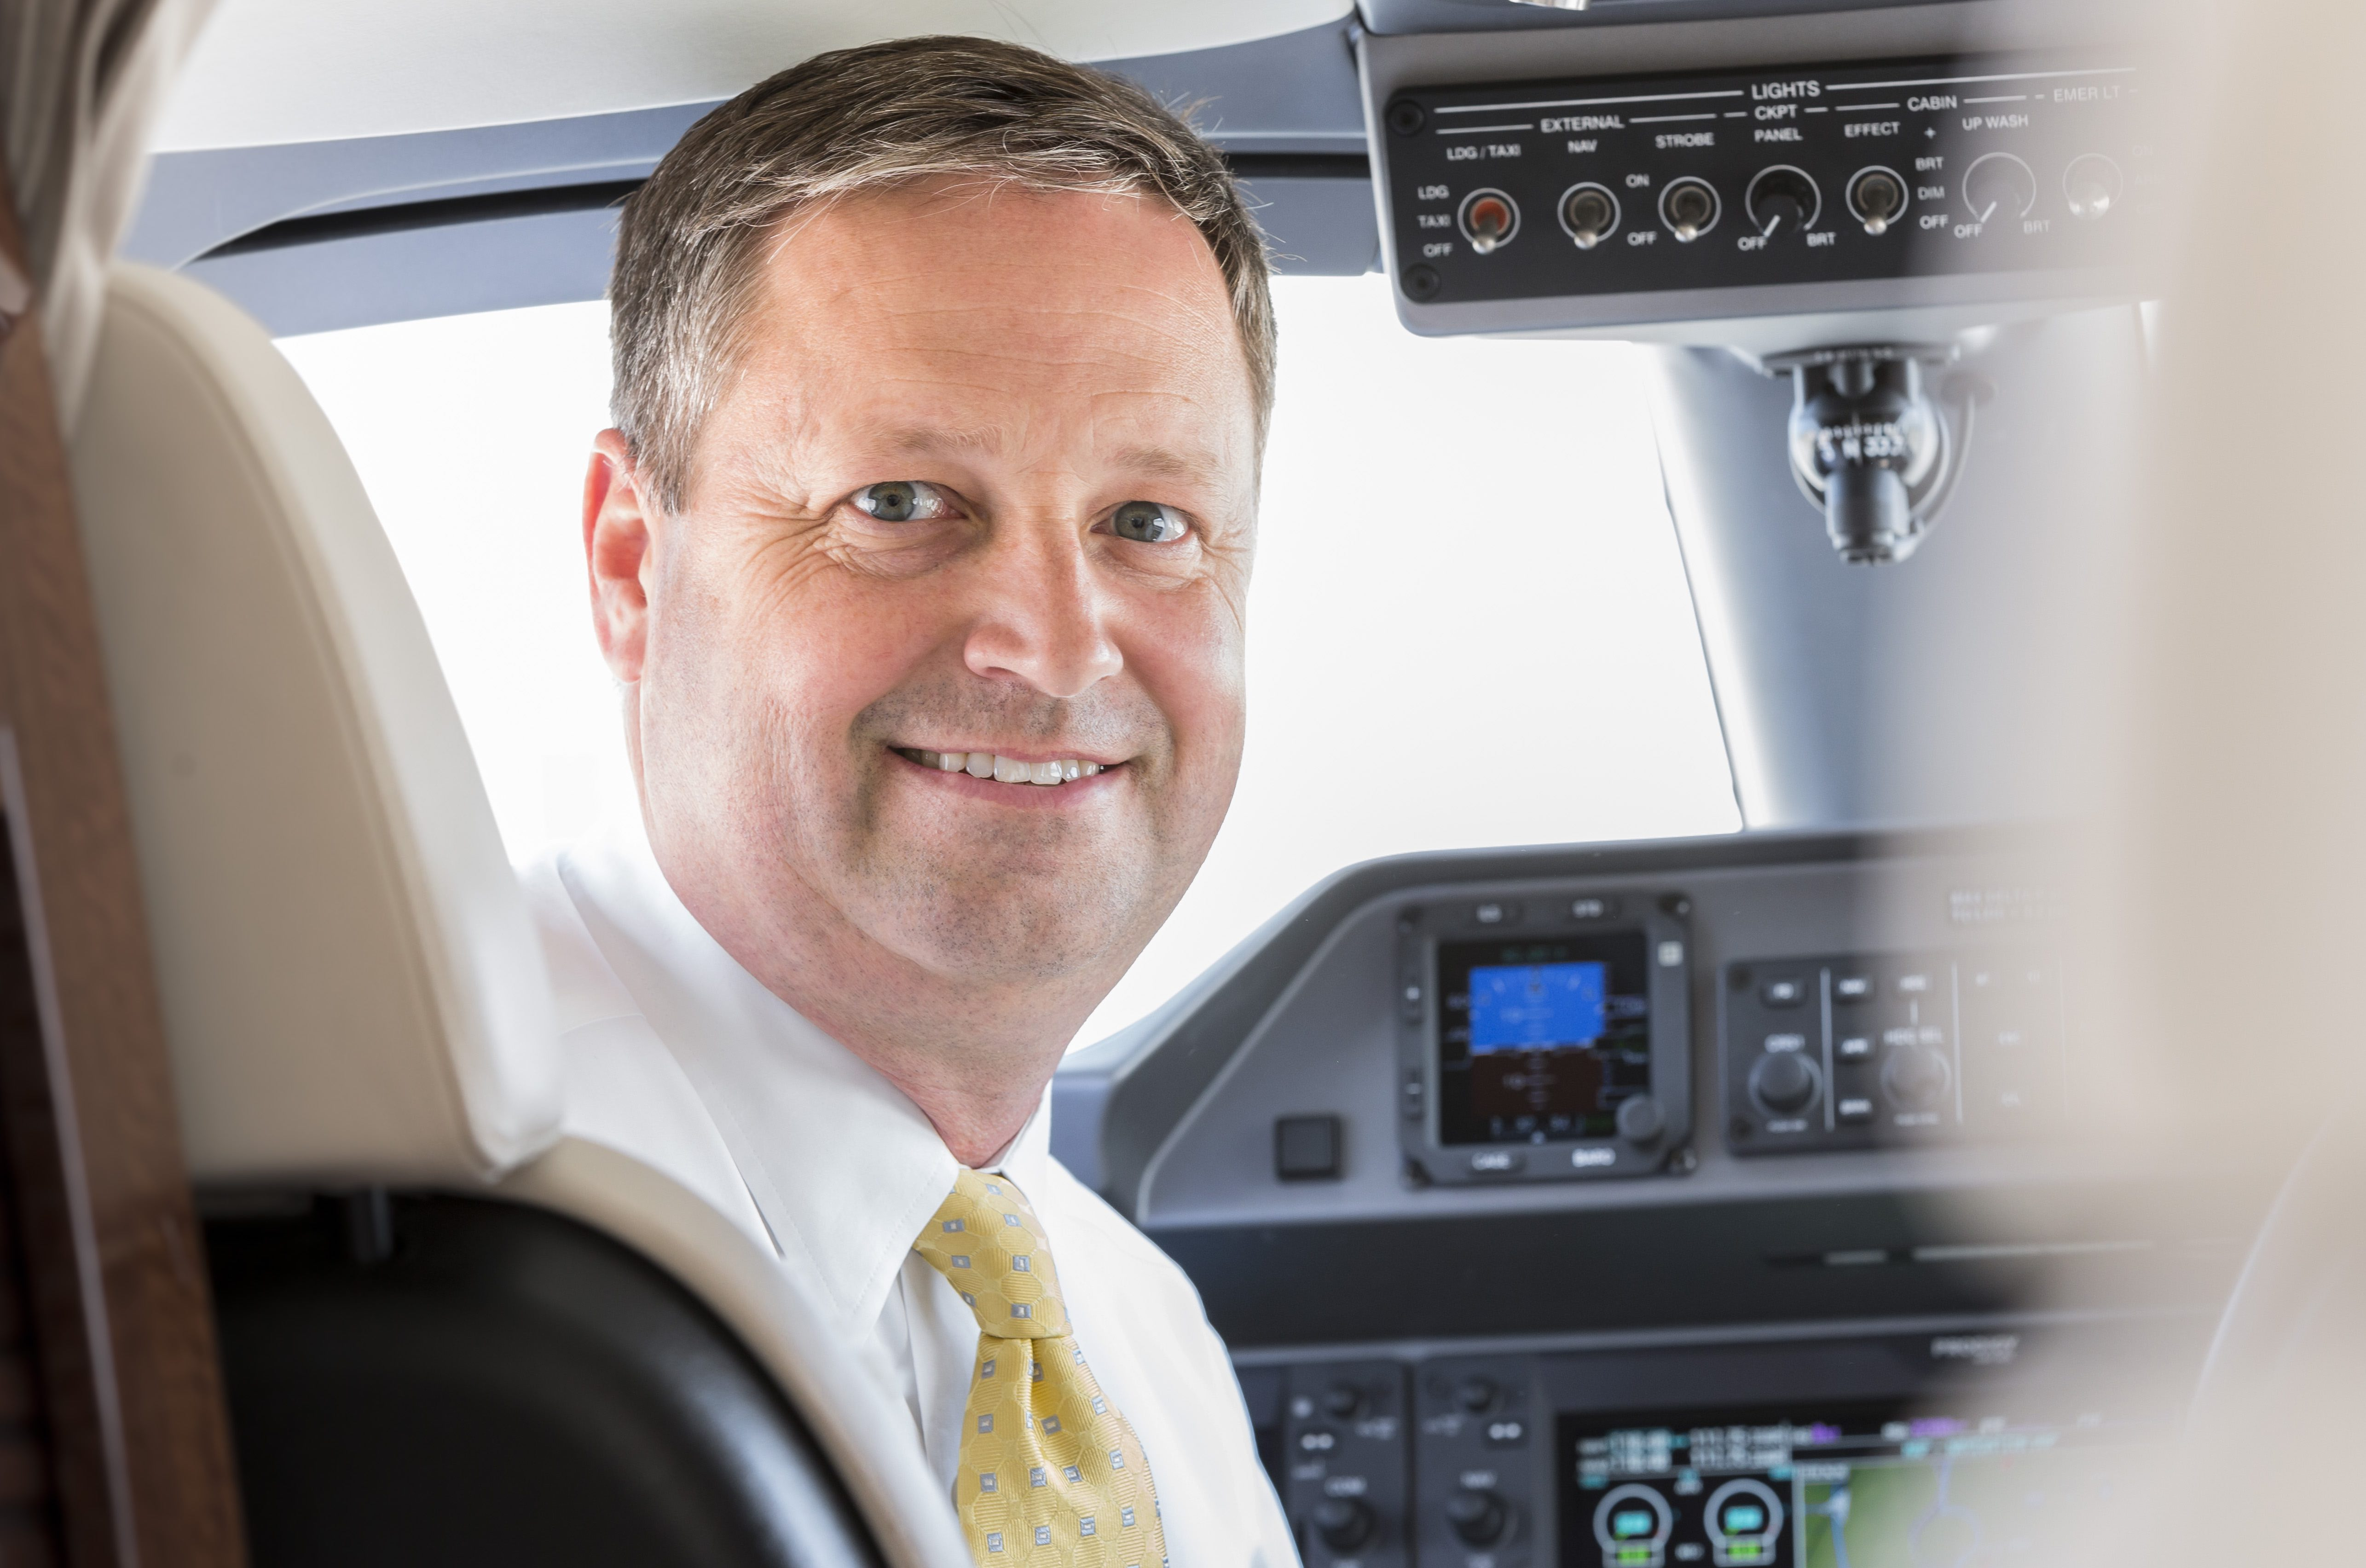 Co-founder of Executive AirShare will step down